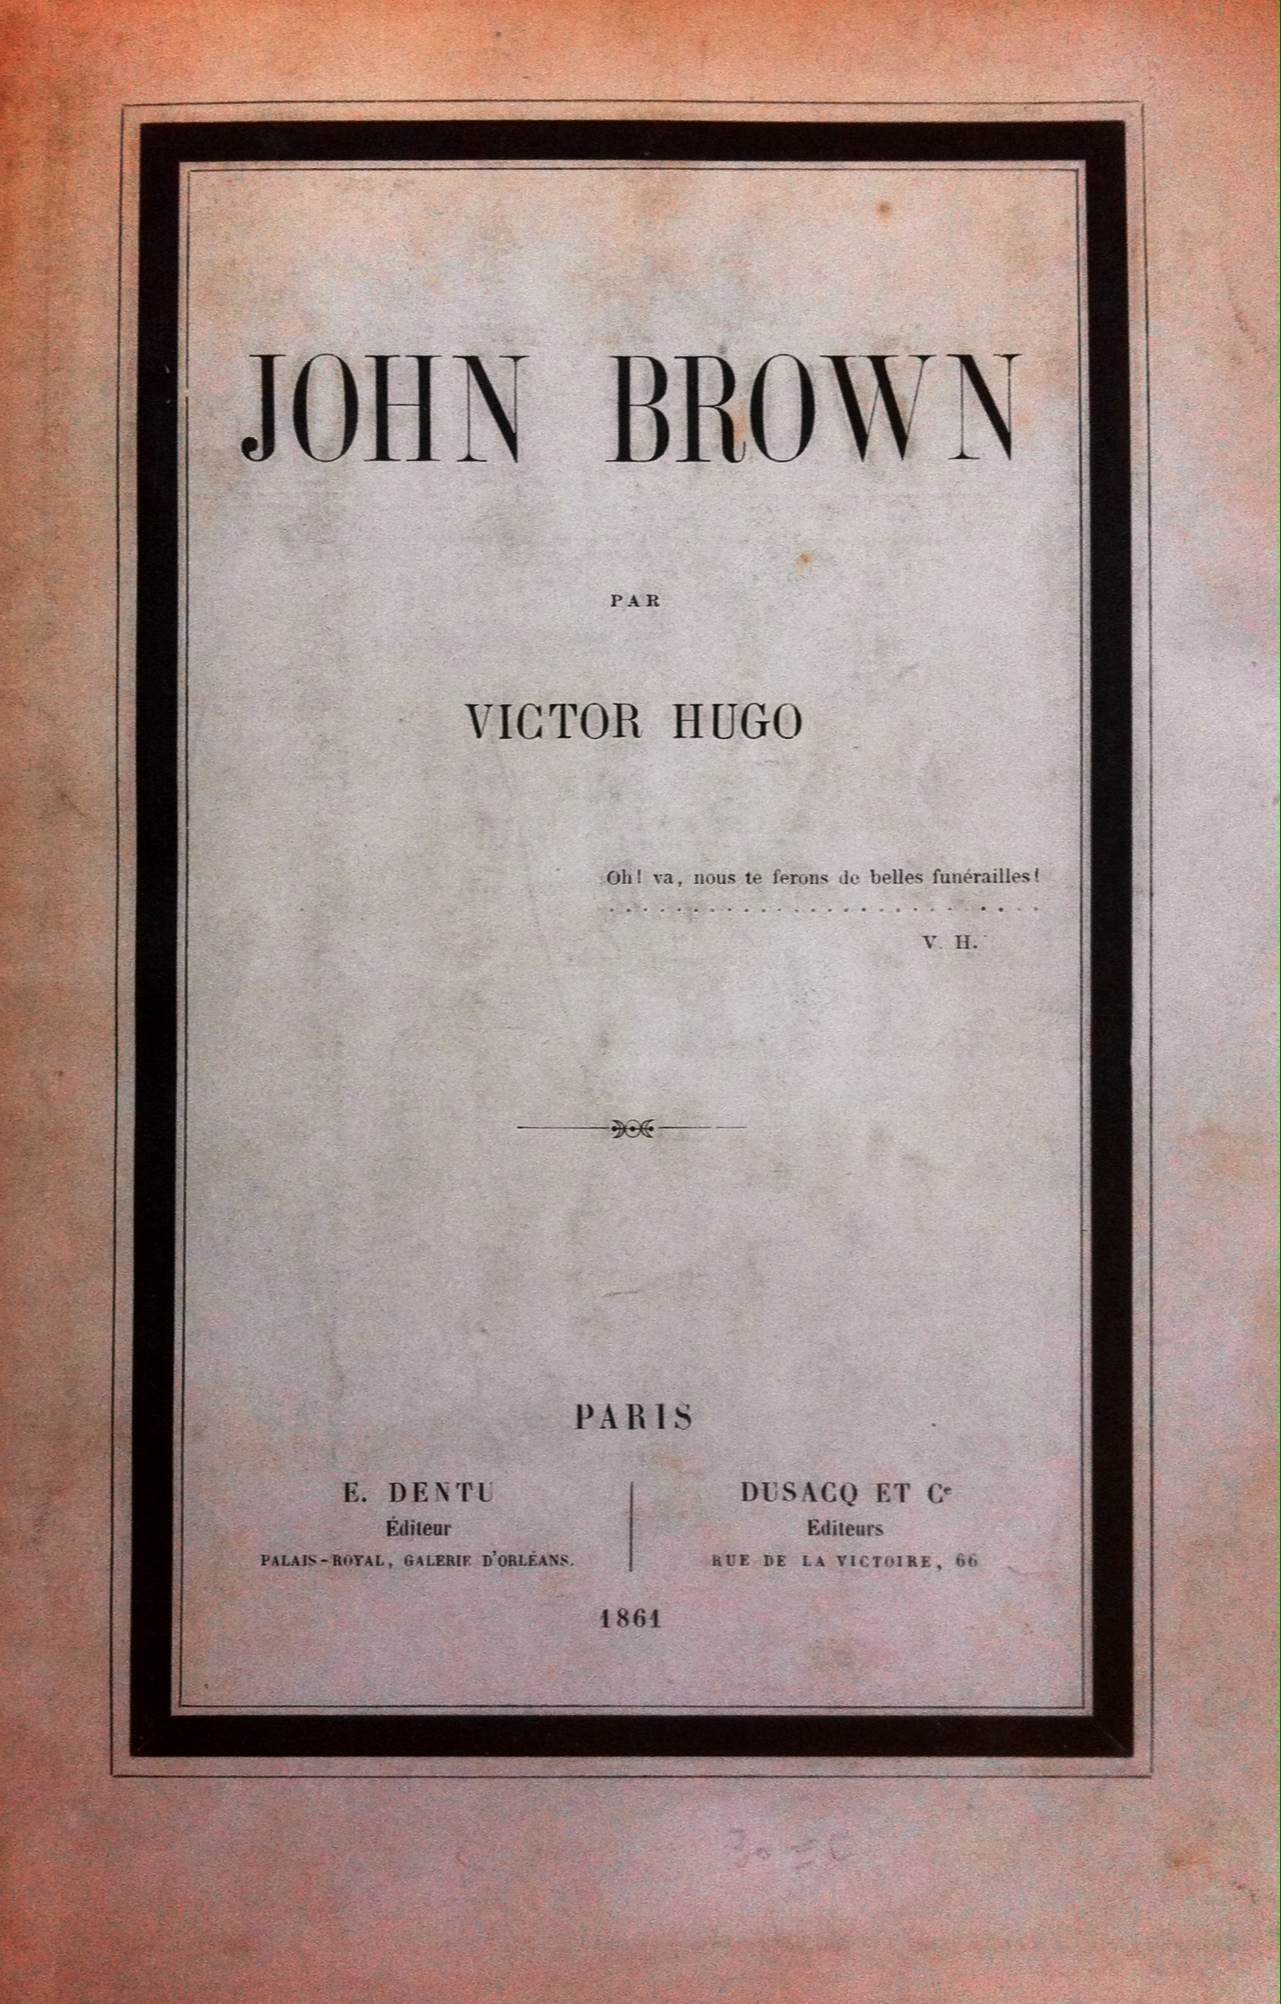 john brown© jmh titre